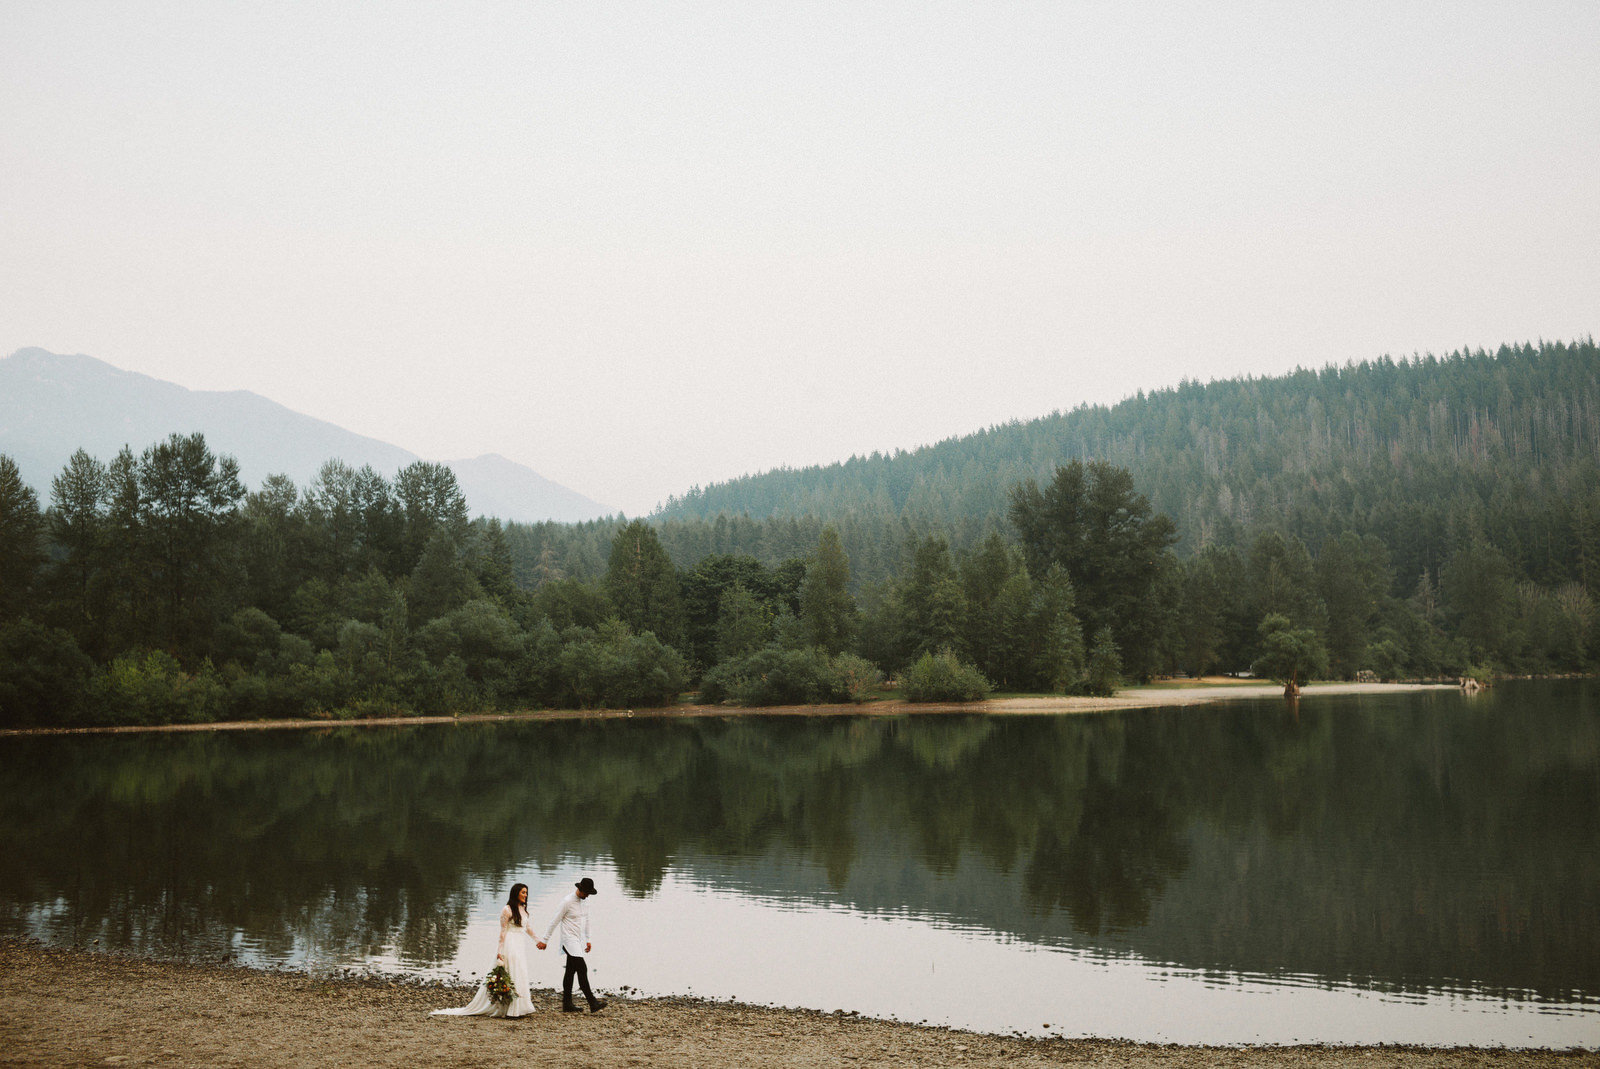 athena-and-camron-seattle-elopement-wedding-benj-haisch-rattlesnake-lake-christian-couple-goals75